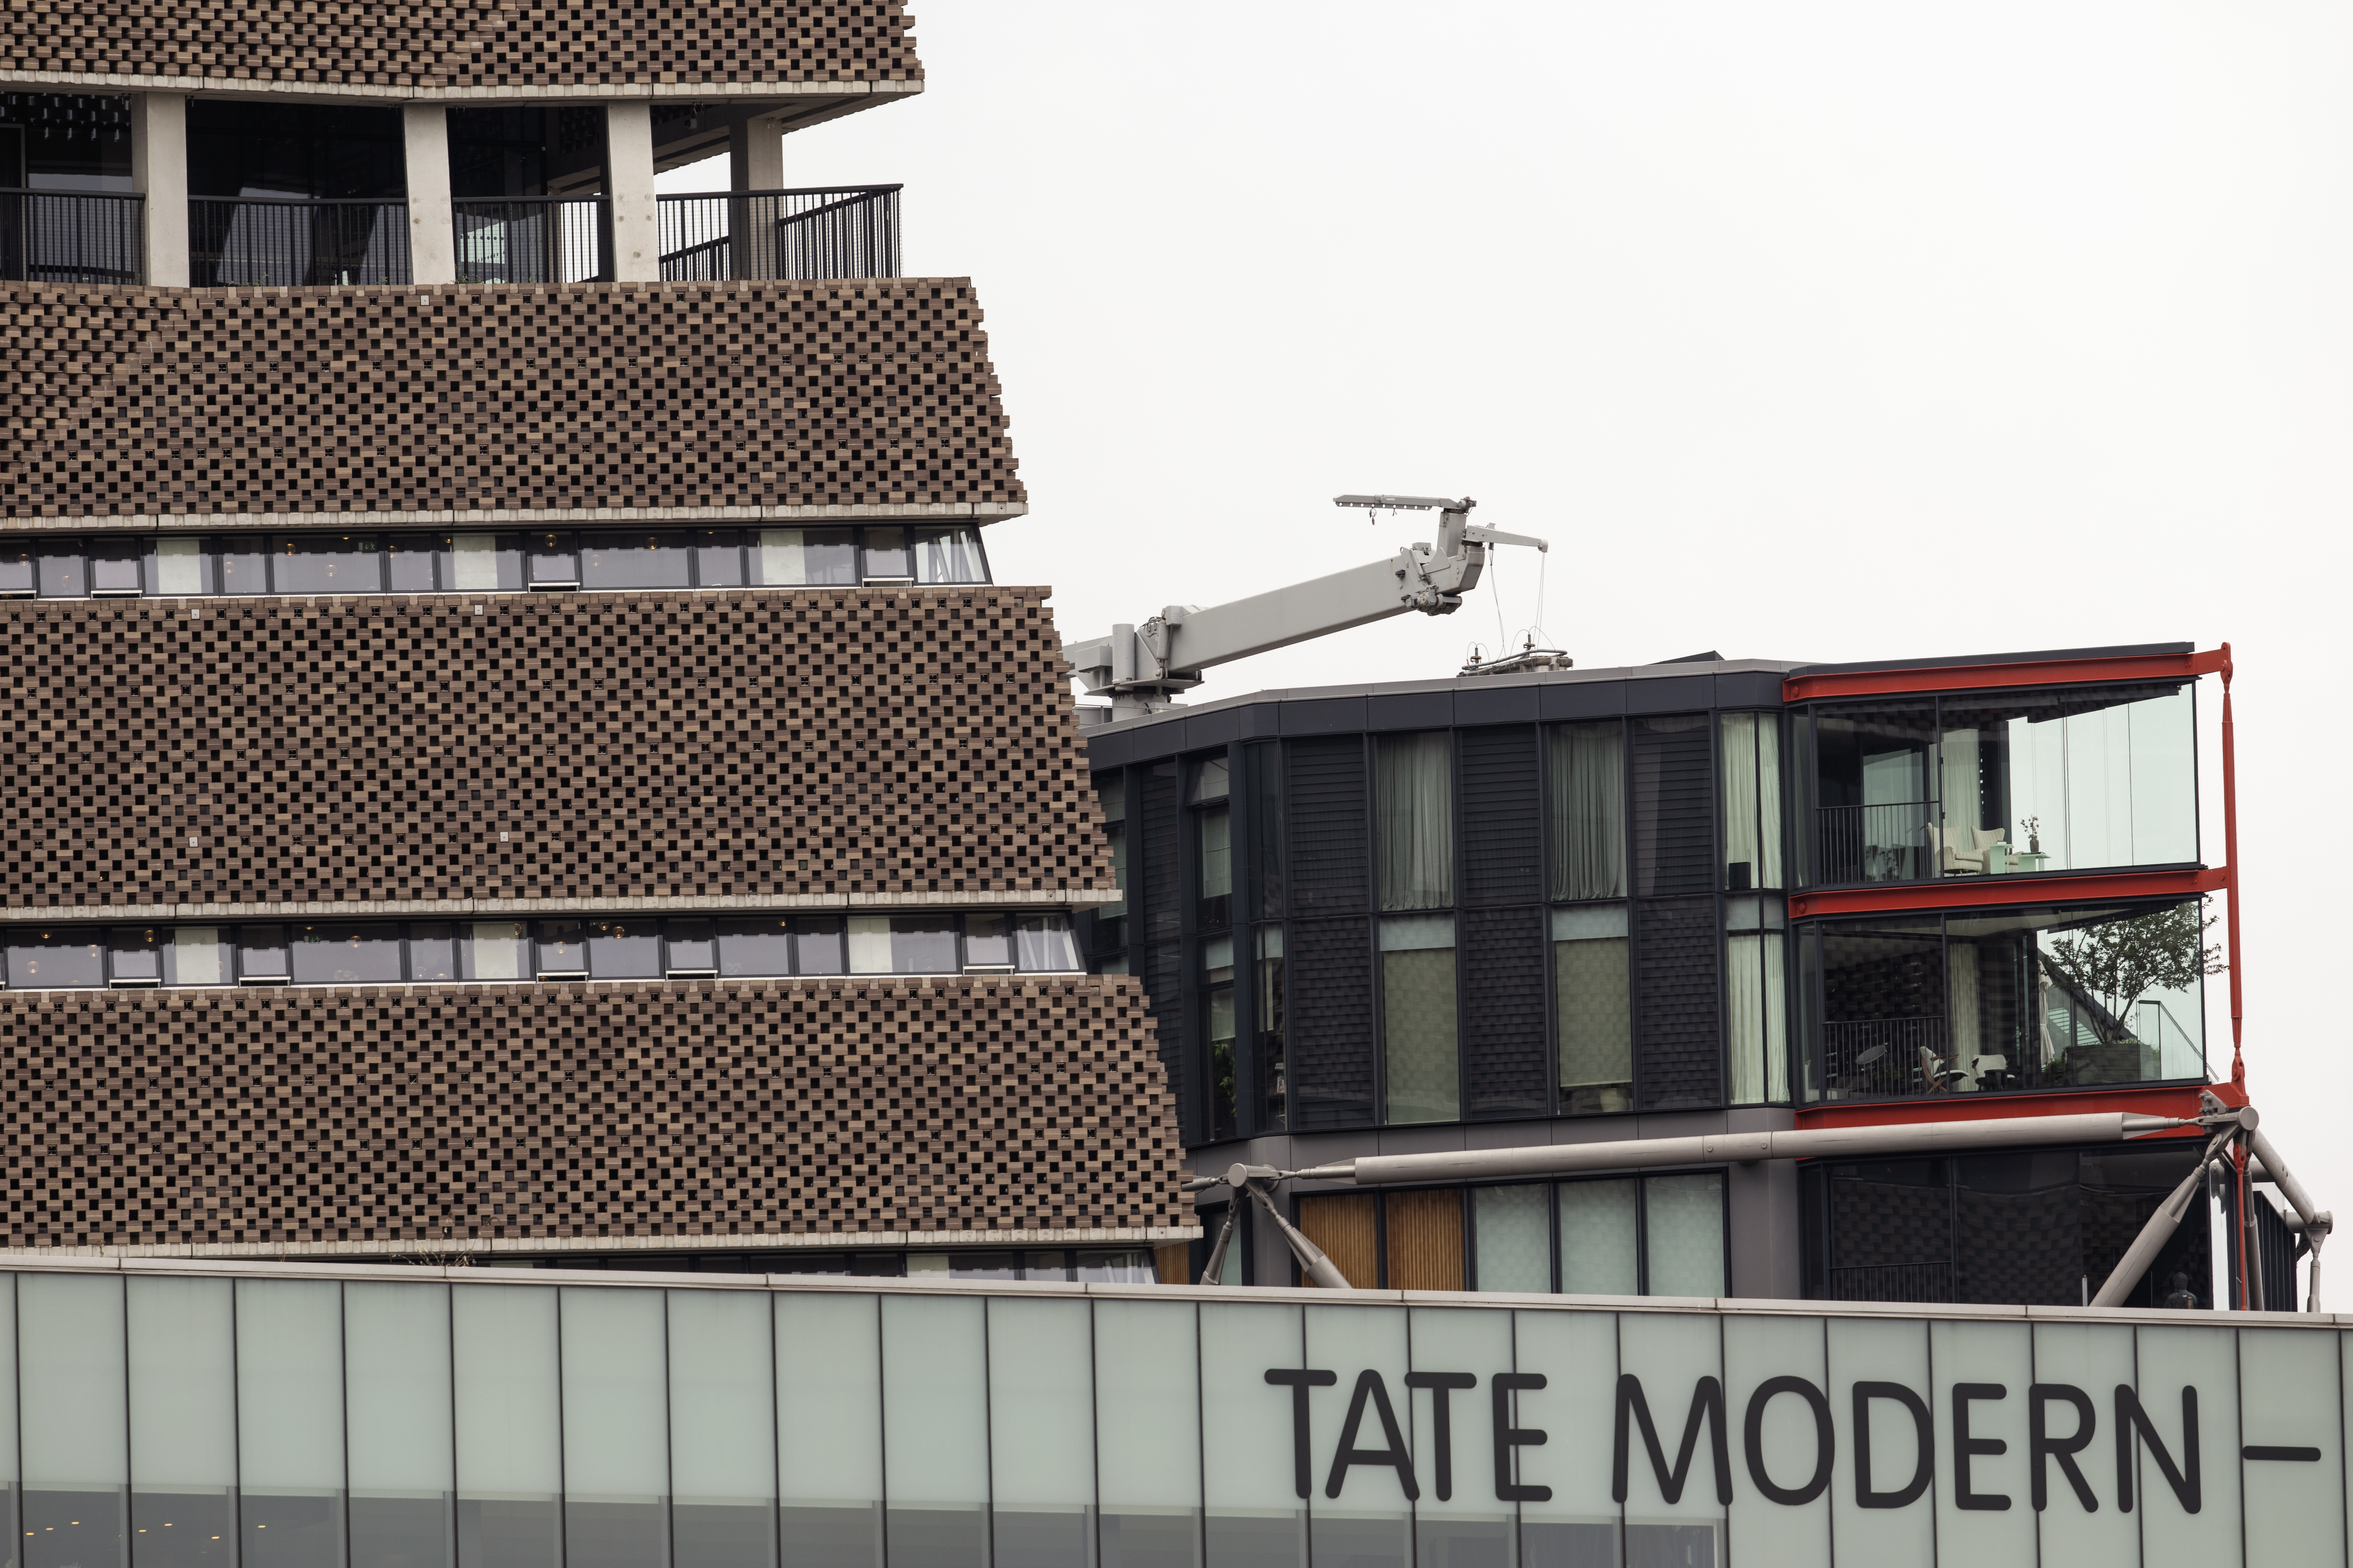 LONDON, ENGLAND - AUGUST 05: A view of the 10th floor balcony at the Tate Modern on August 05, 2019 in London, England. A six-year-old boy was in critical but stable condition after falling from a 10th floor viewing platform onto a 5th floor roof at the museum on Sunday. A 17-year-old boy was arrested on suspicion of attempted murder for allegedly throwing or pushing him over a railing. (Photo by Dan Kitwood/Getty Images)